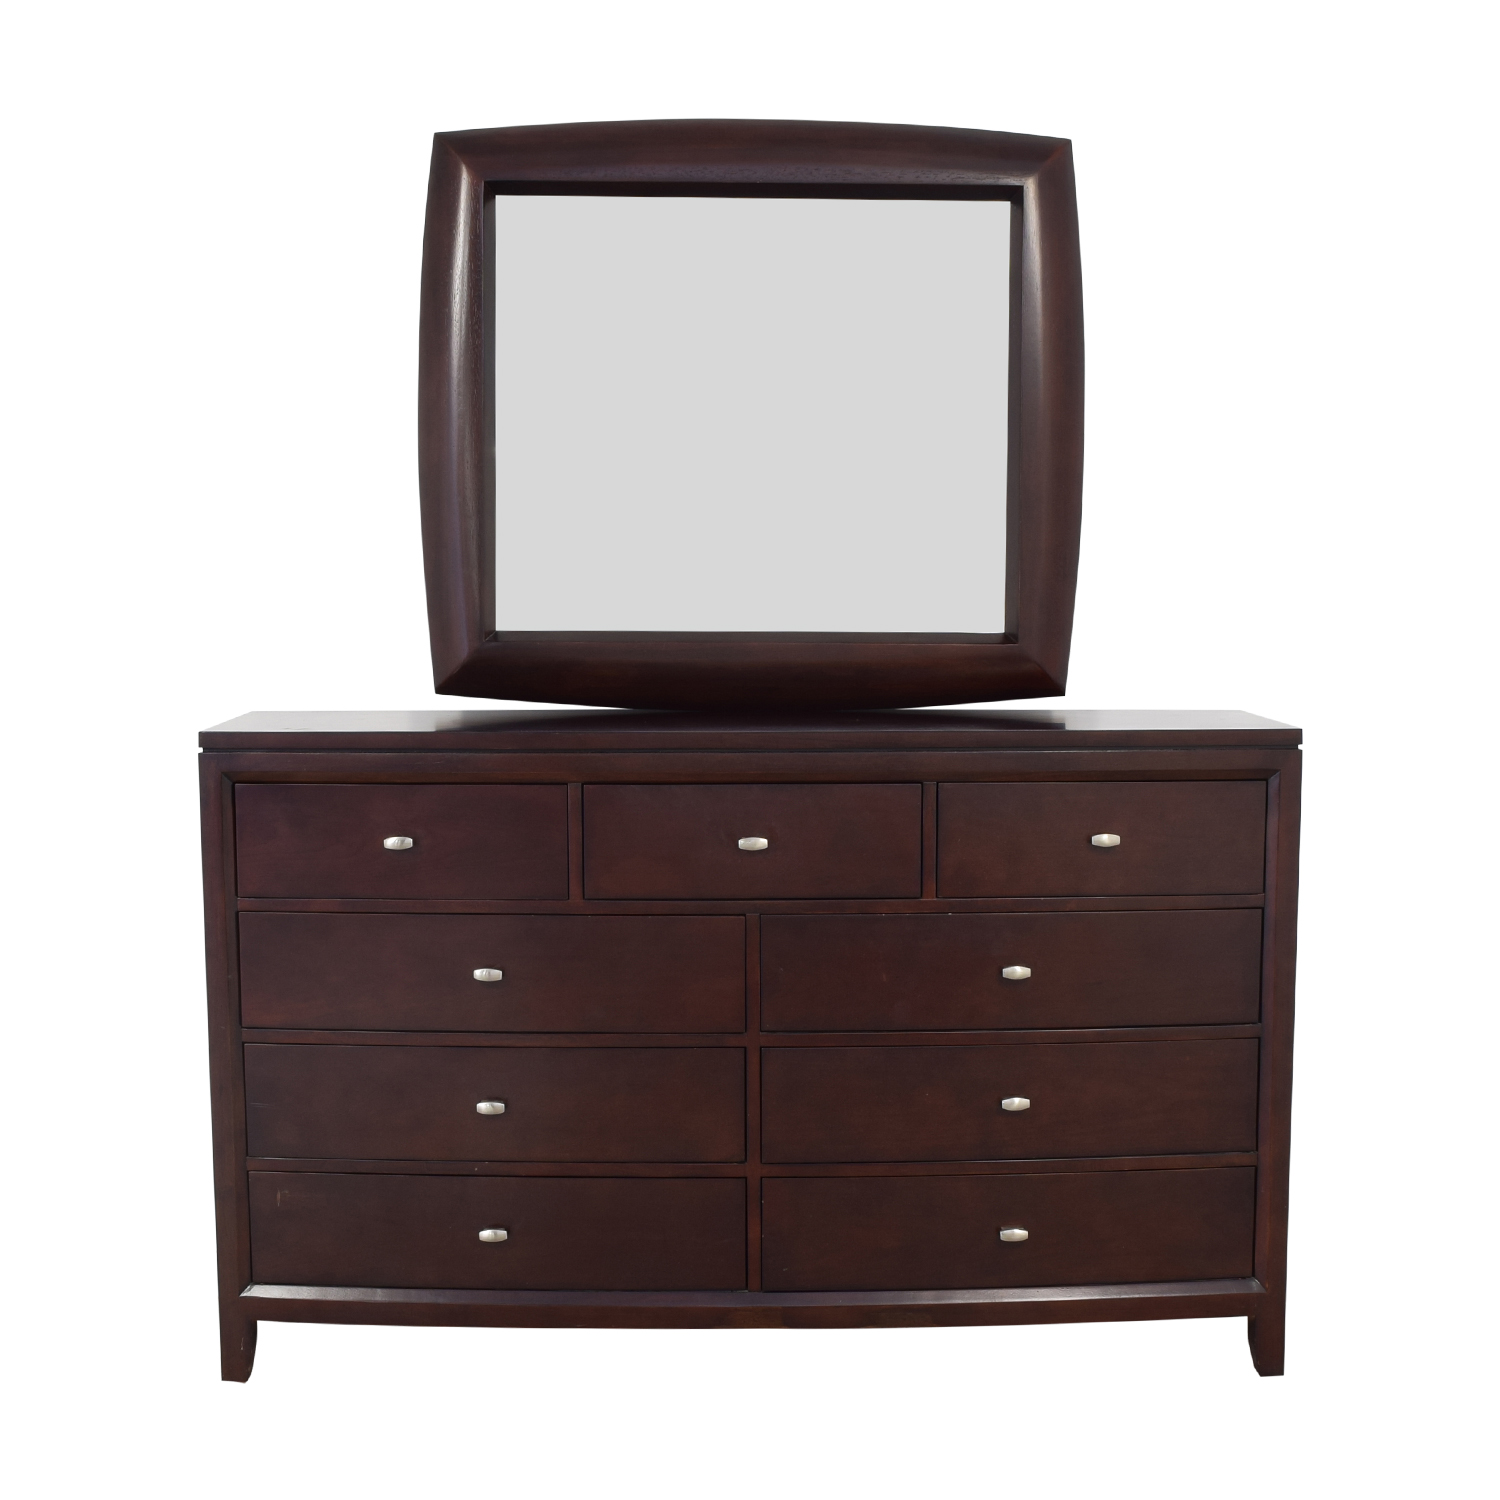 American Drew American Drew Dresser with Mirror on sale